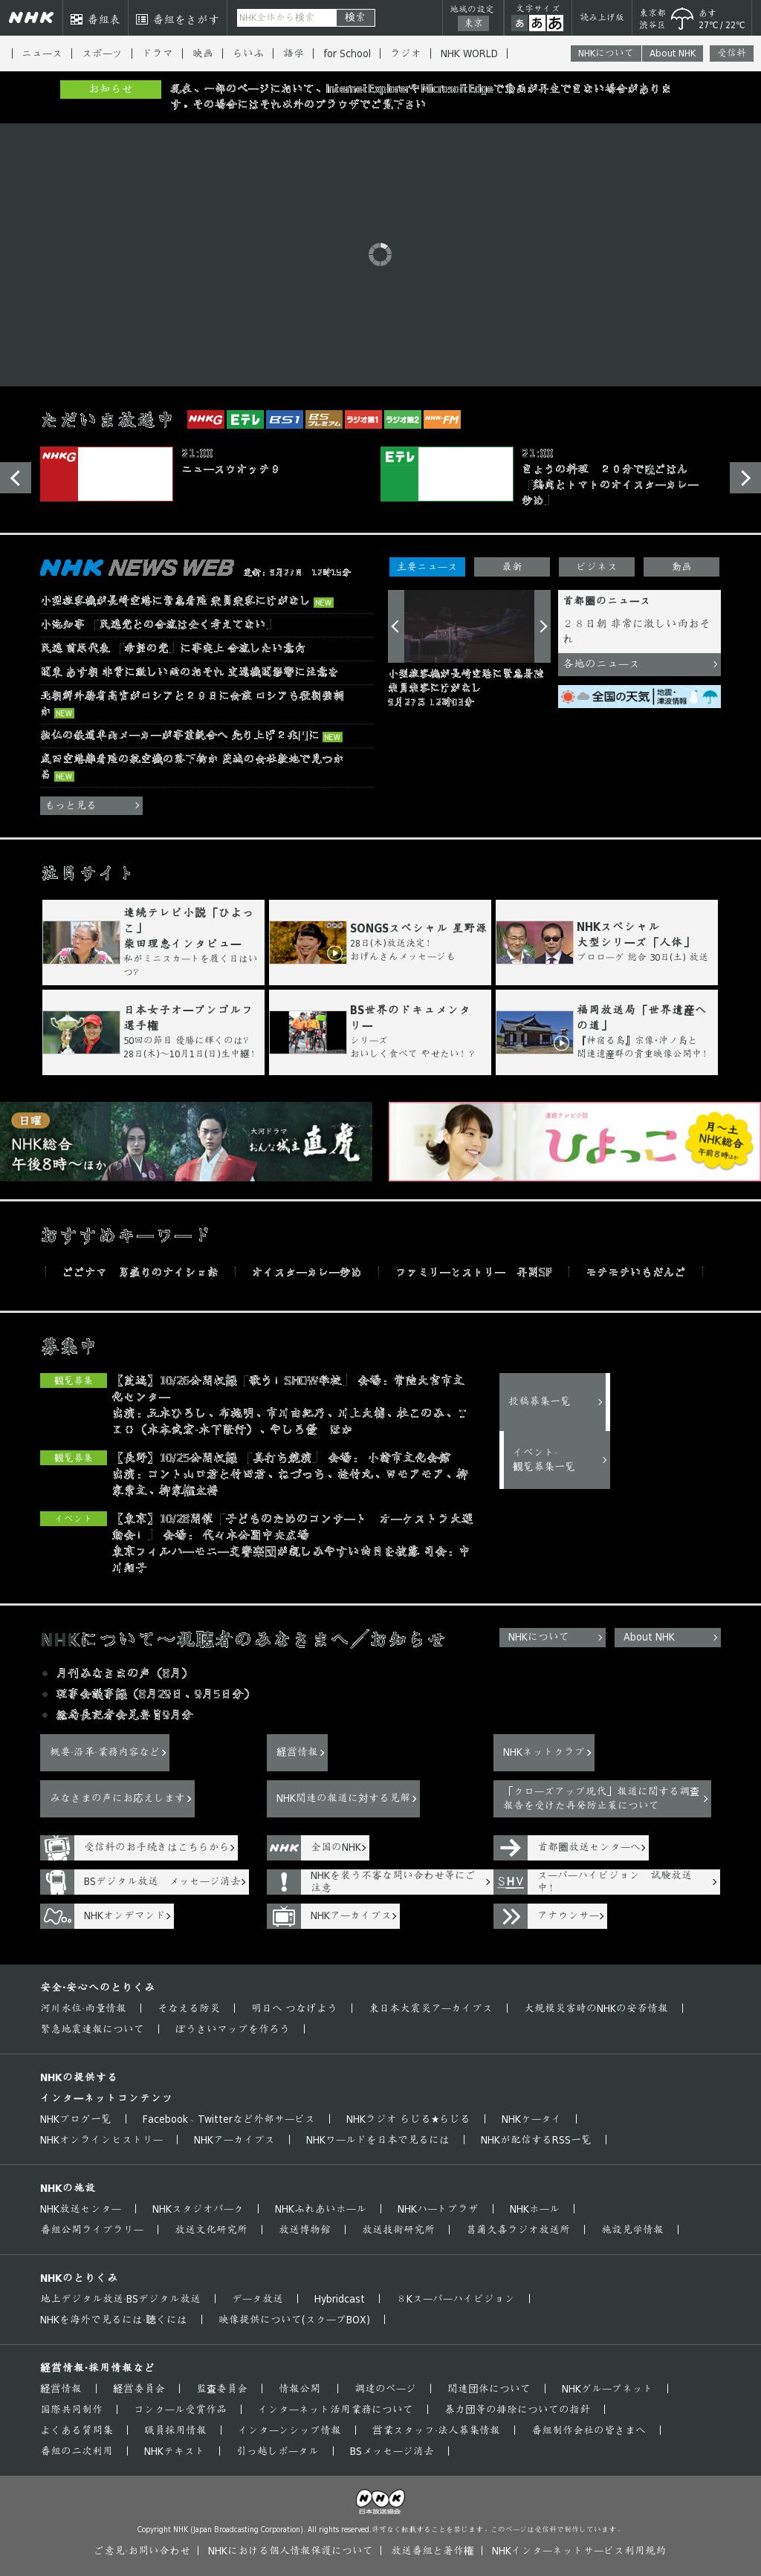 NHK Online at Wednesday Sept. 27, 2017, 12:20 p.m. UTC